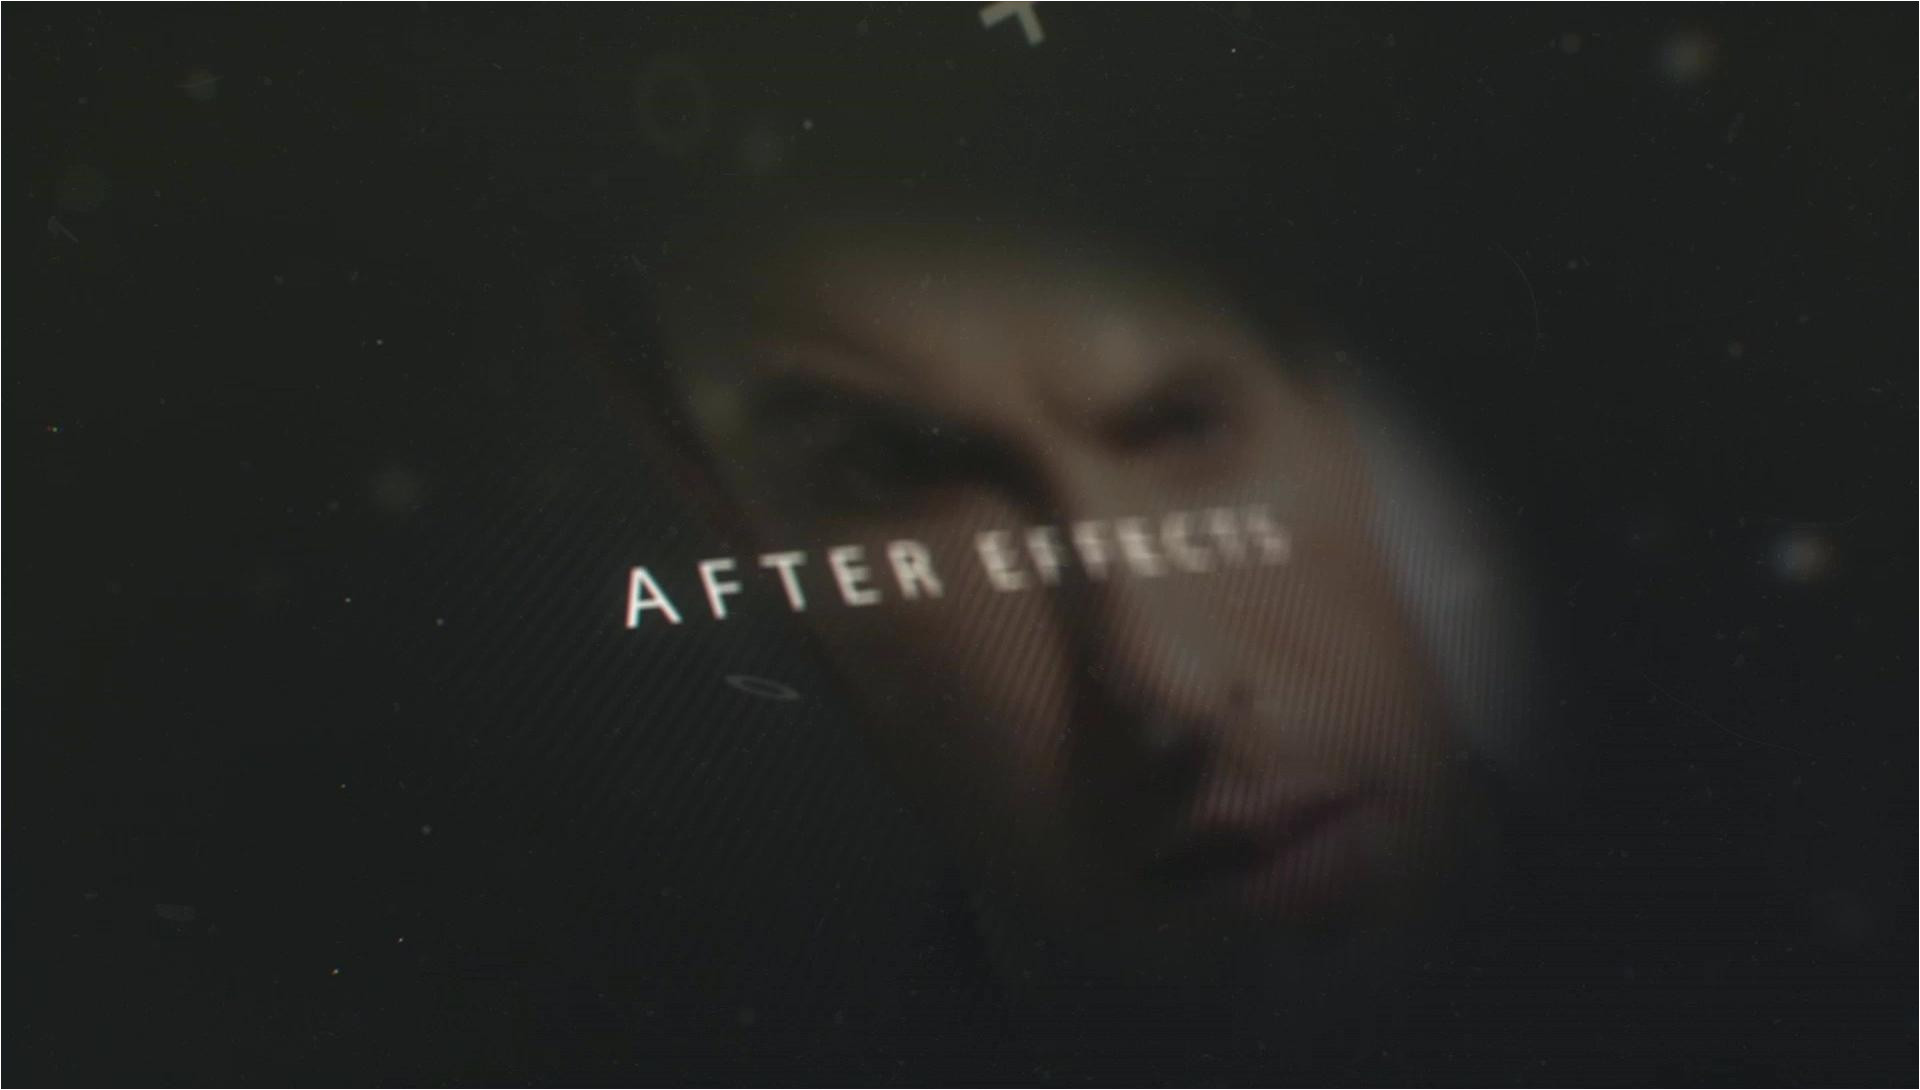 After Effect Templates torrent Adobe after Effects Template torrent